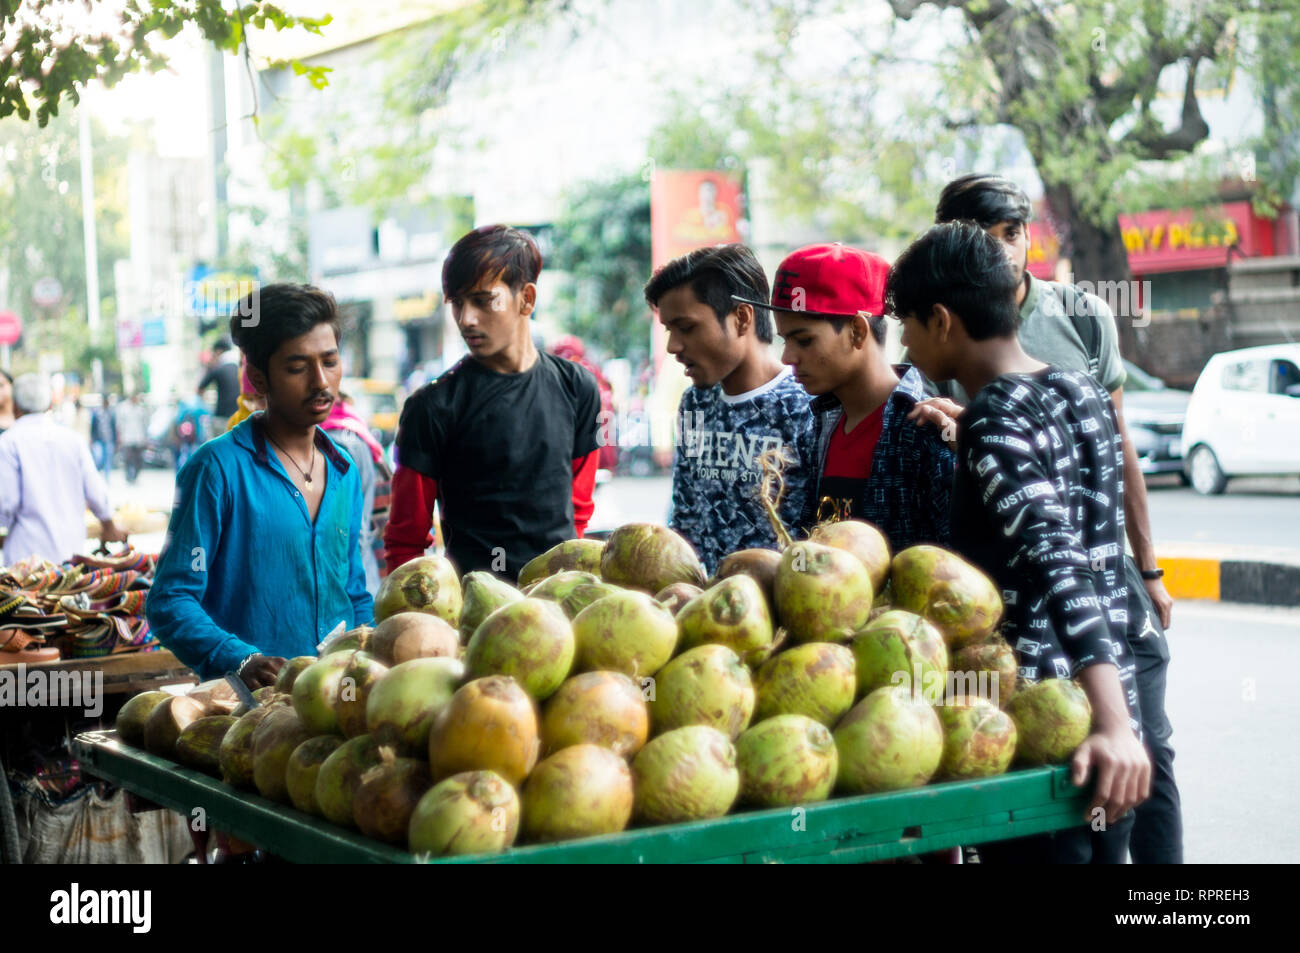 Coconut vendor and cart surrounded by people eager to drink - Stock Image